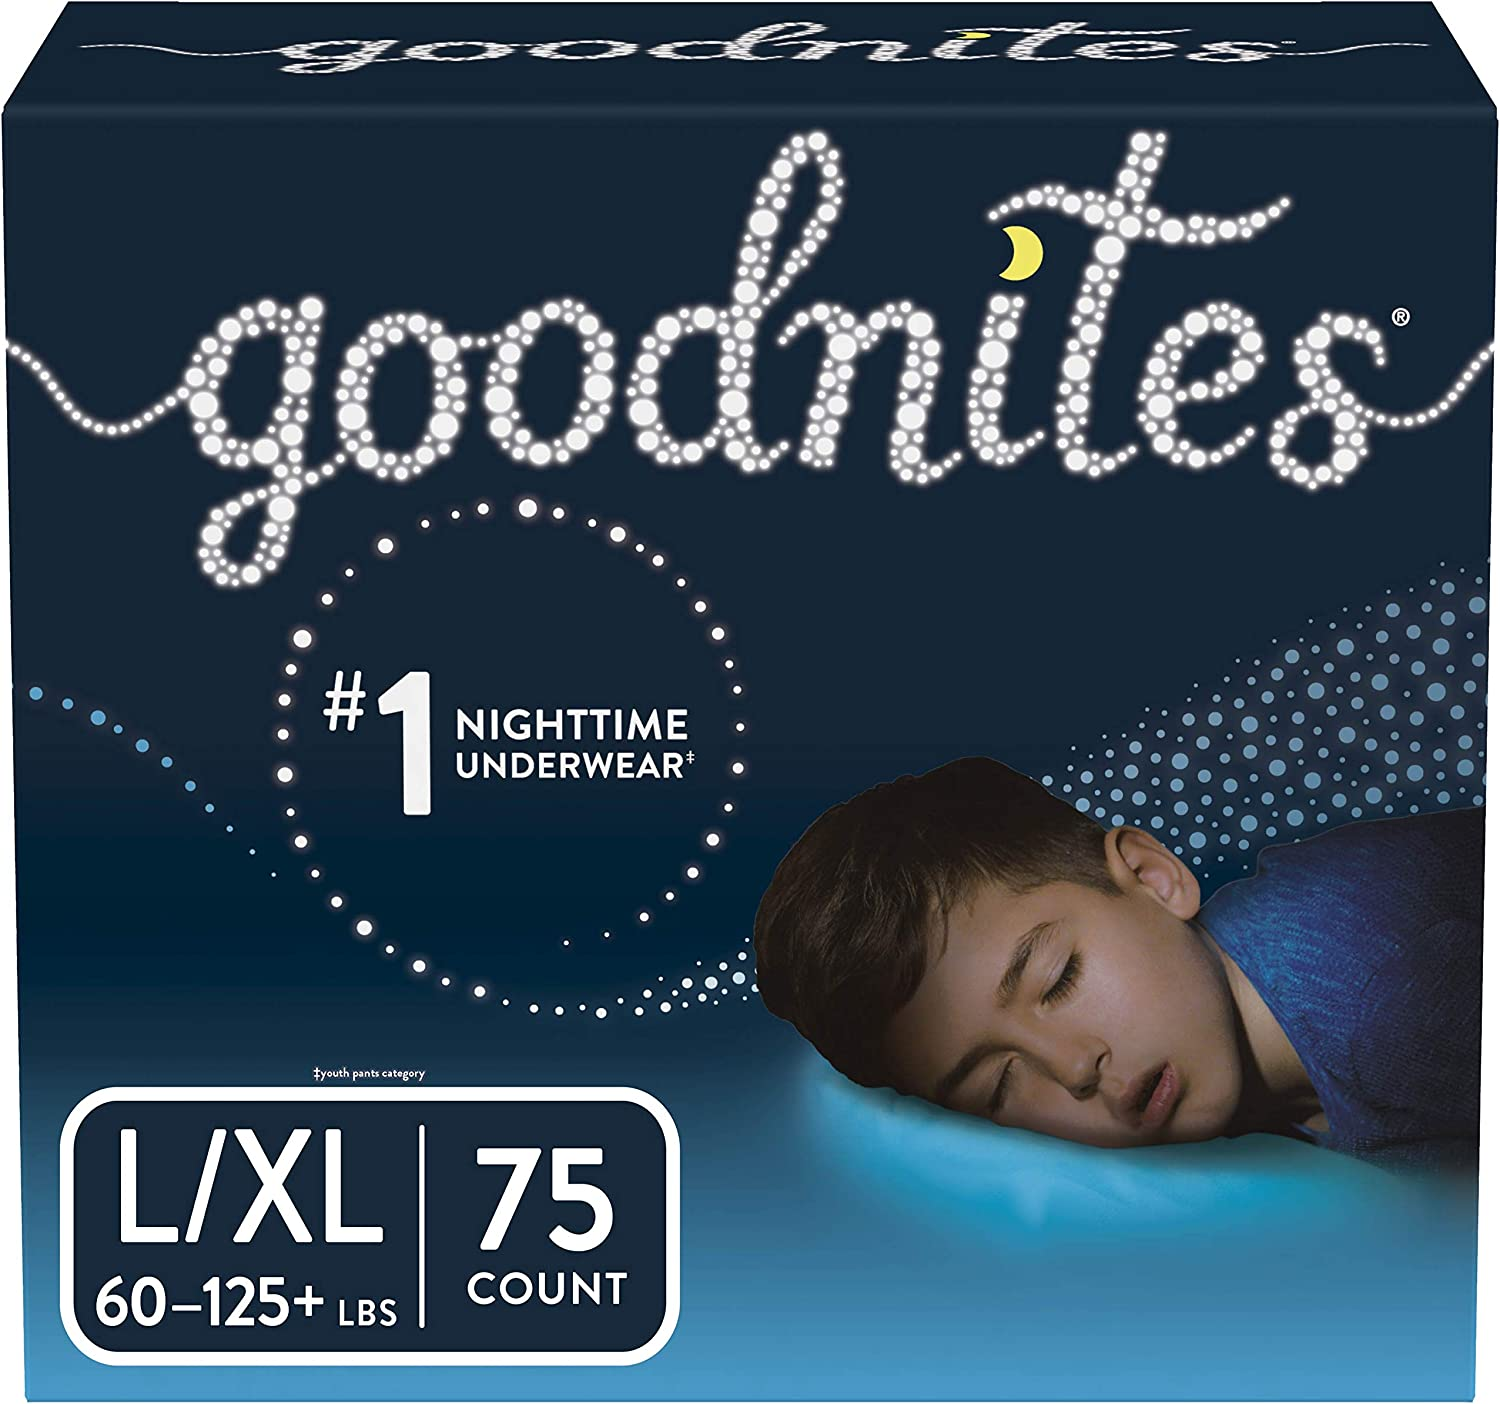 Goodnites Bedwetting Underwear for Boys, L/XL, 75 Ct, Stock Up Pack